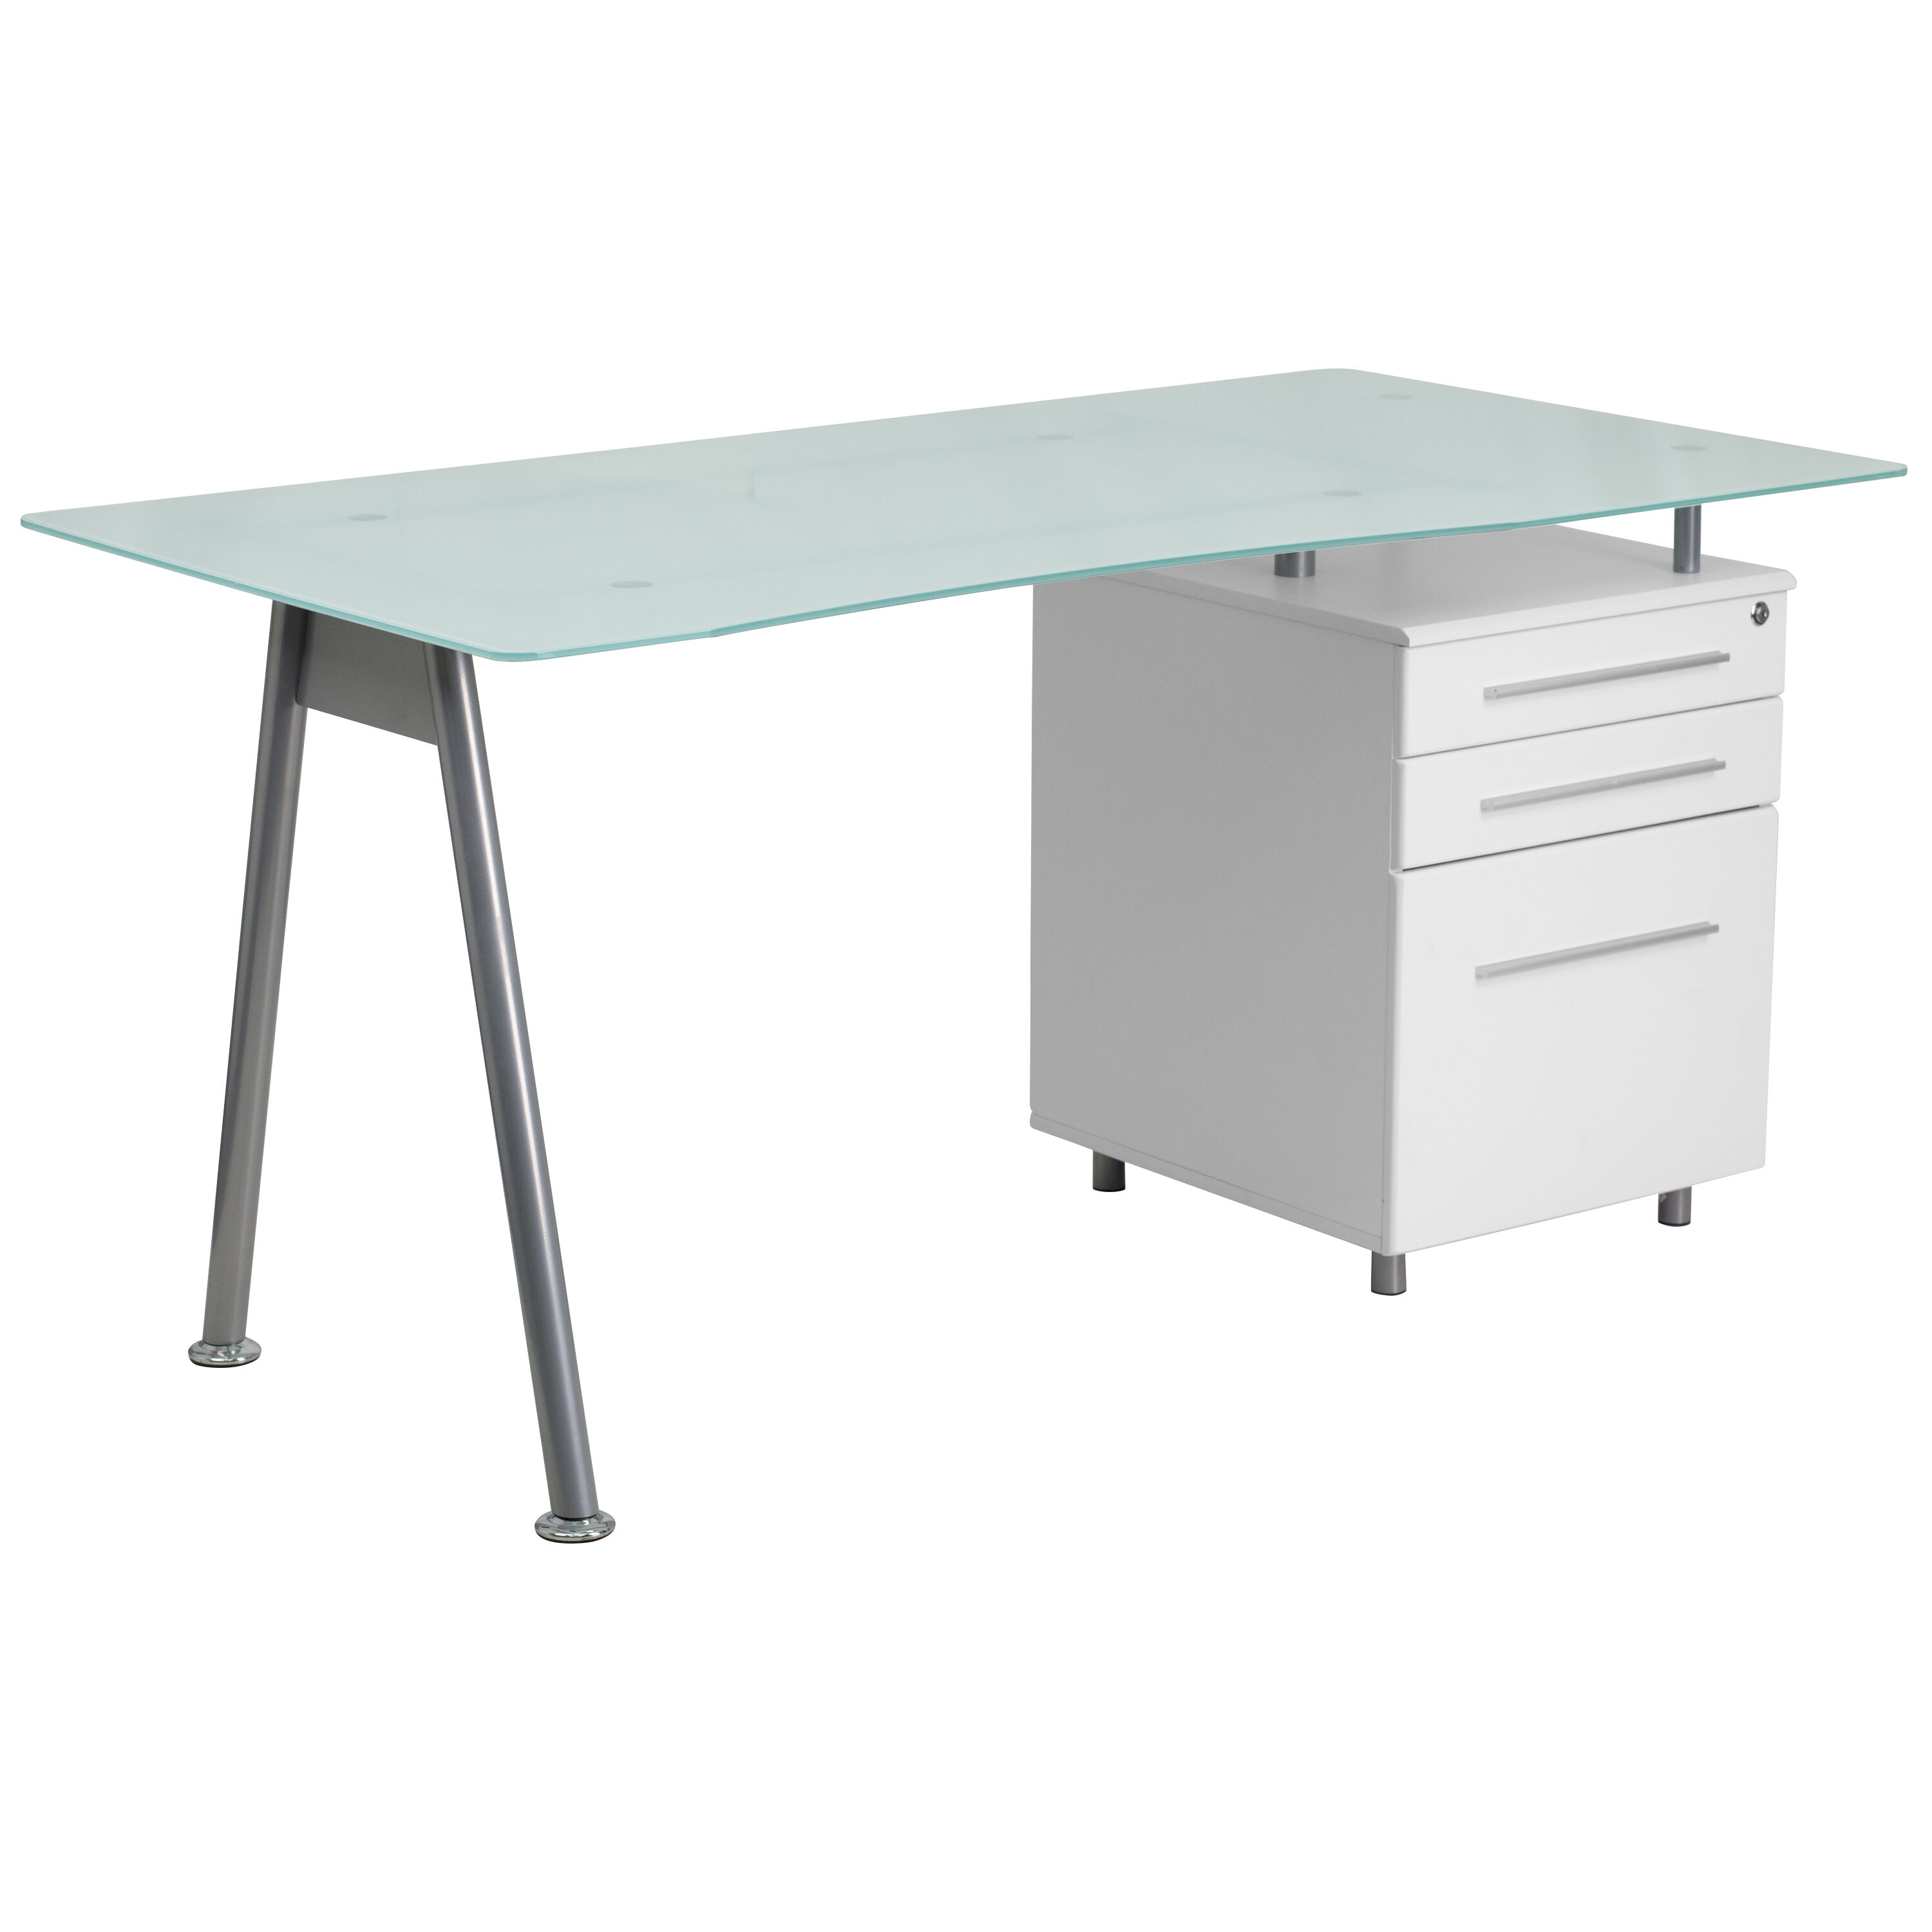 Frosted Glass Top Drawer Desk Nan-wk-021-gg